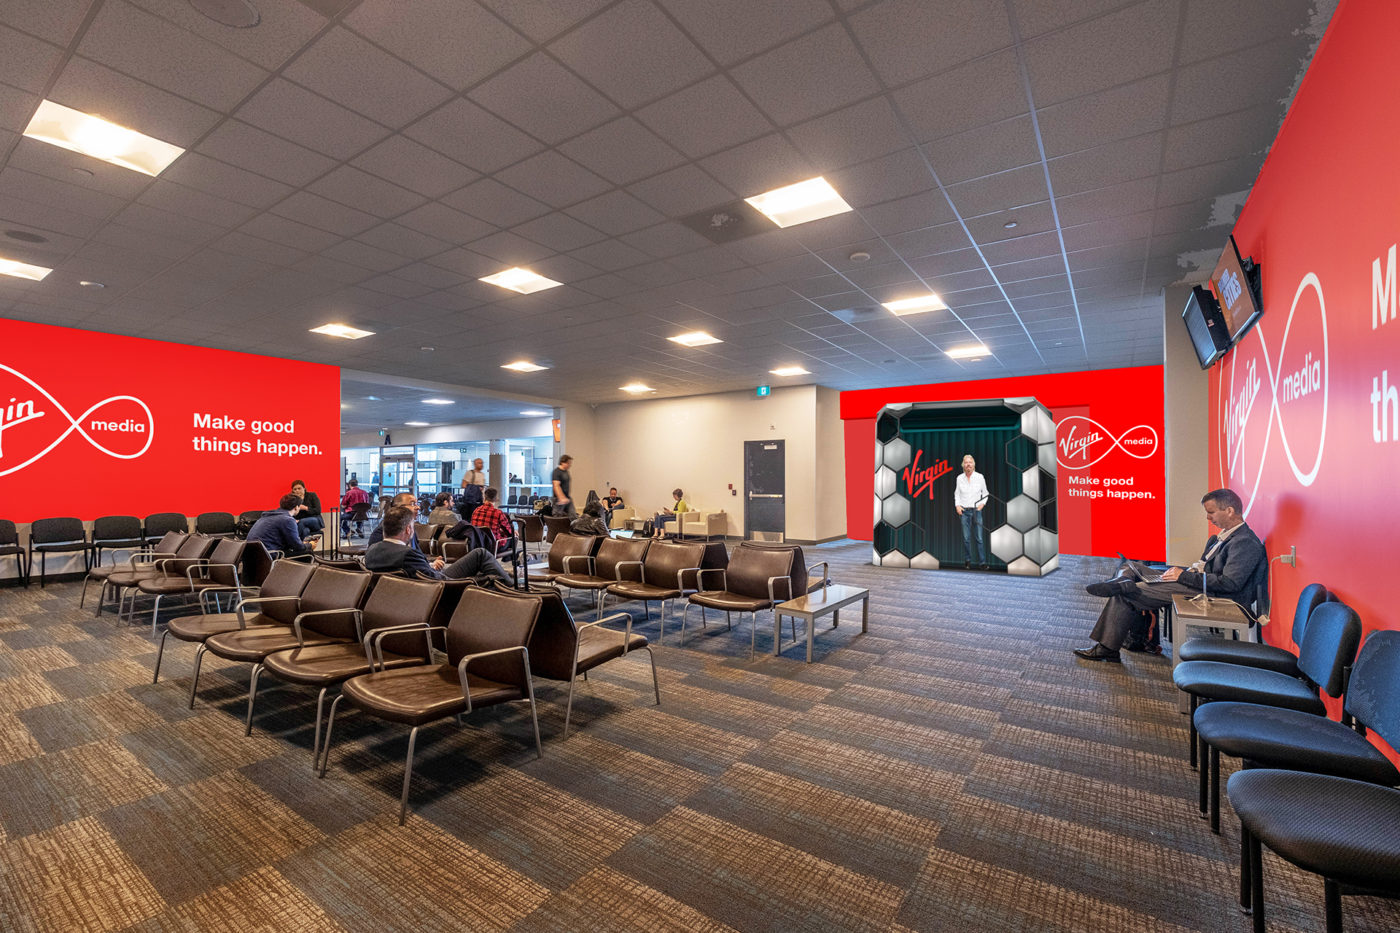 Virgin Media - Billy Bishop Toronto City Airport - Departures - Hologram Activation (Toronto, Ontario)